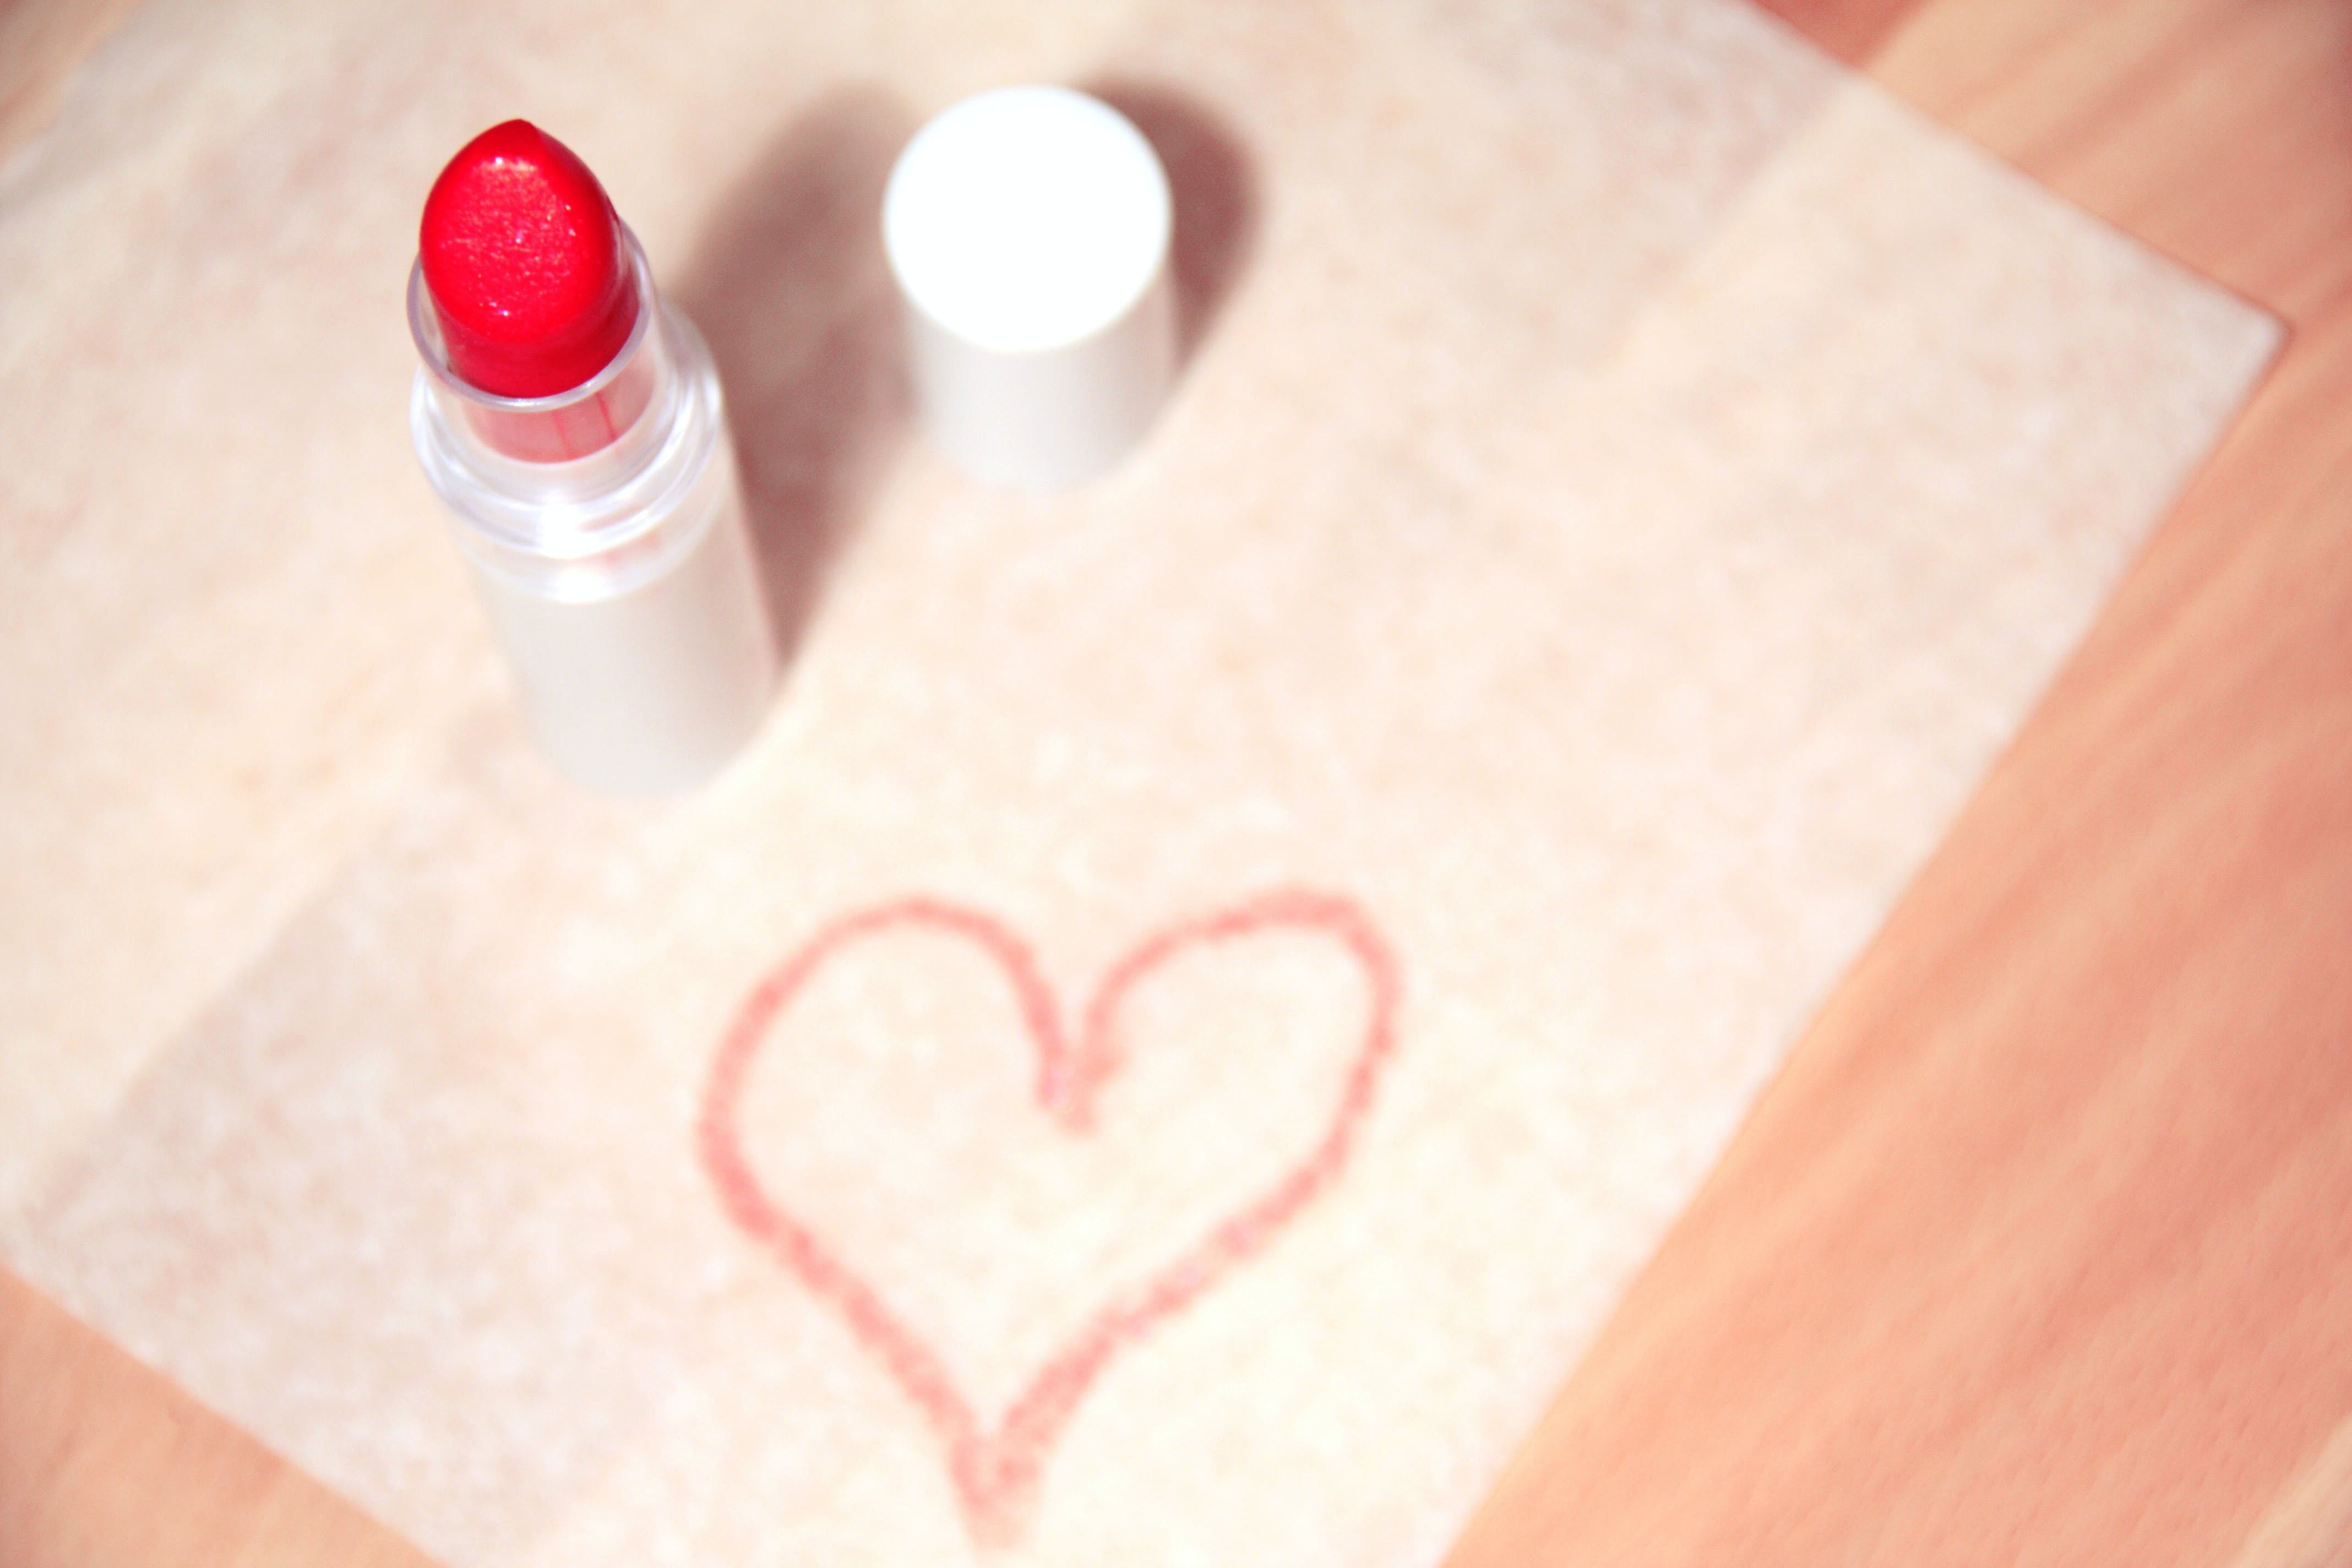 Free stock photo of love, heart, makeup, beauty